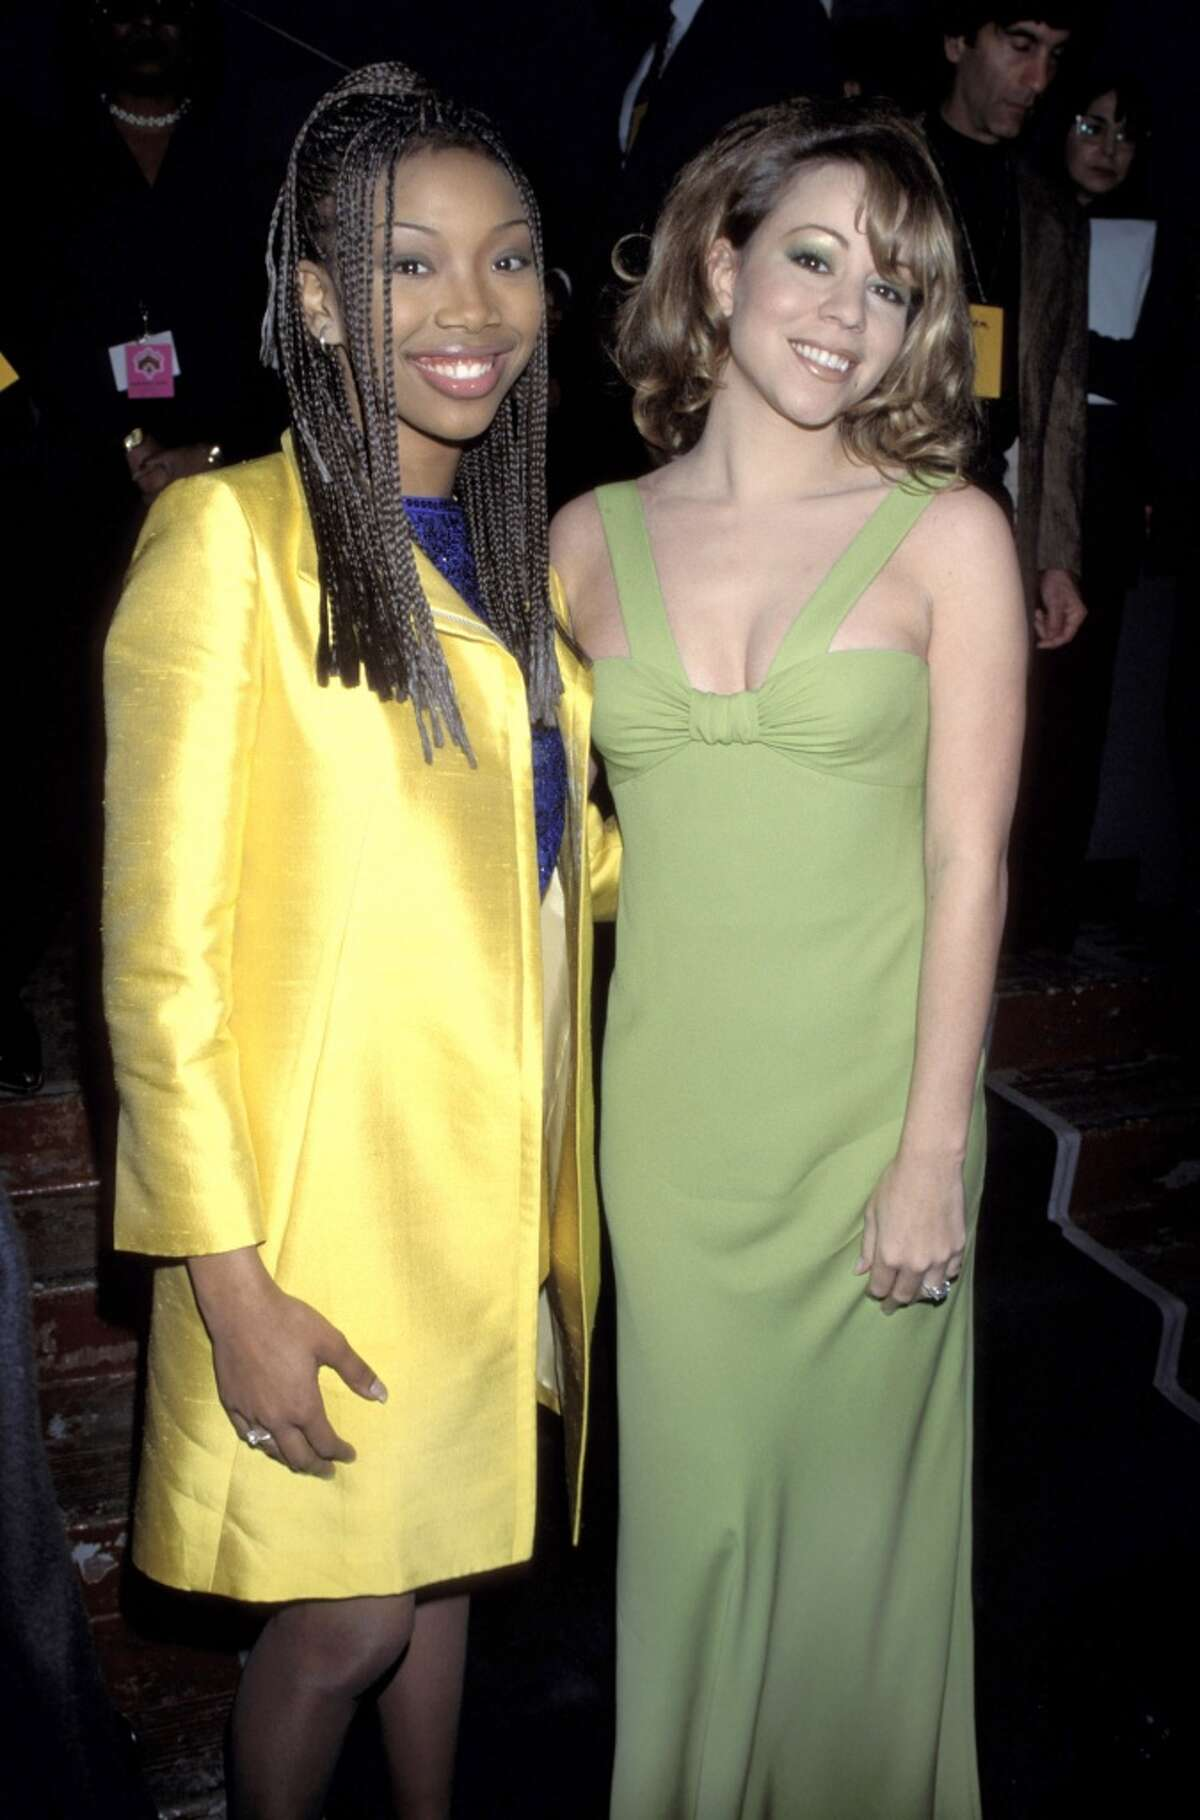 Brandy and Mariah Carey during The 38th Annual GRAMMY Awards - Press Room at Shrine Auditorium on Feb. 28, 1996 in Los Angeles.